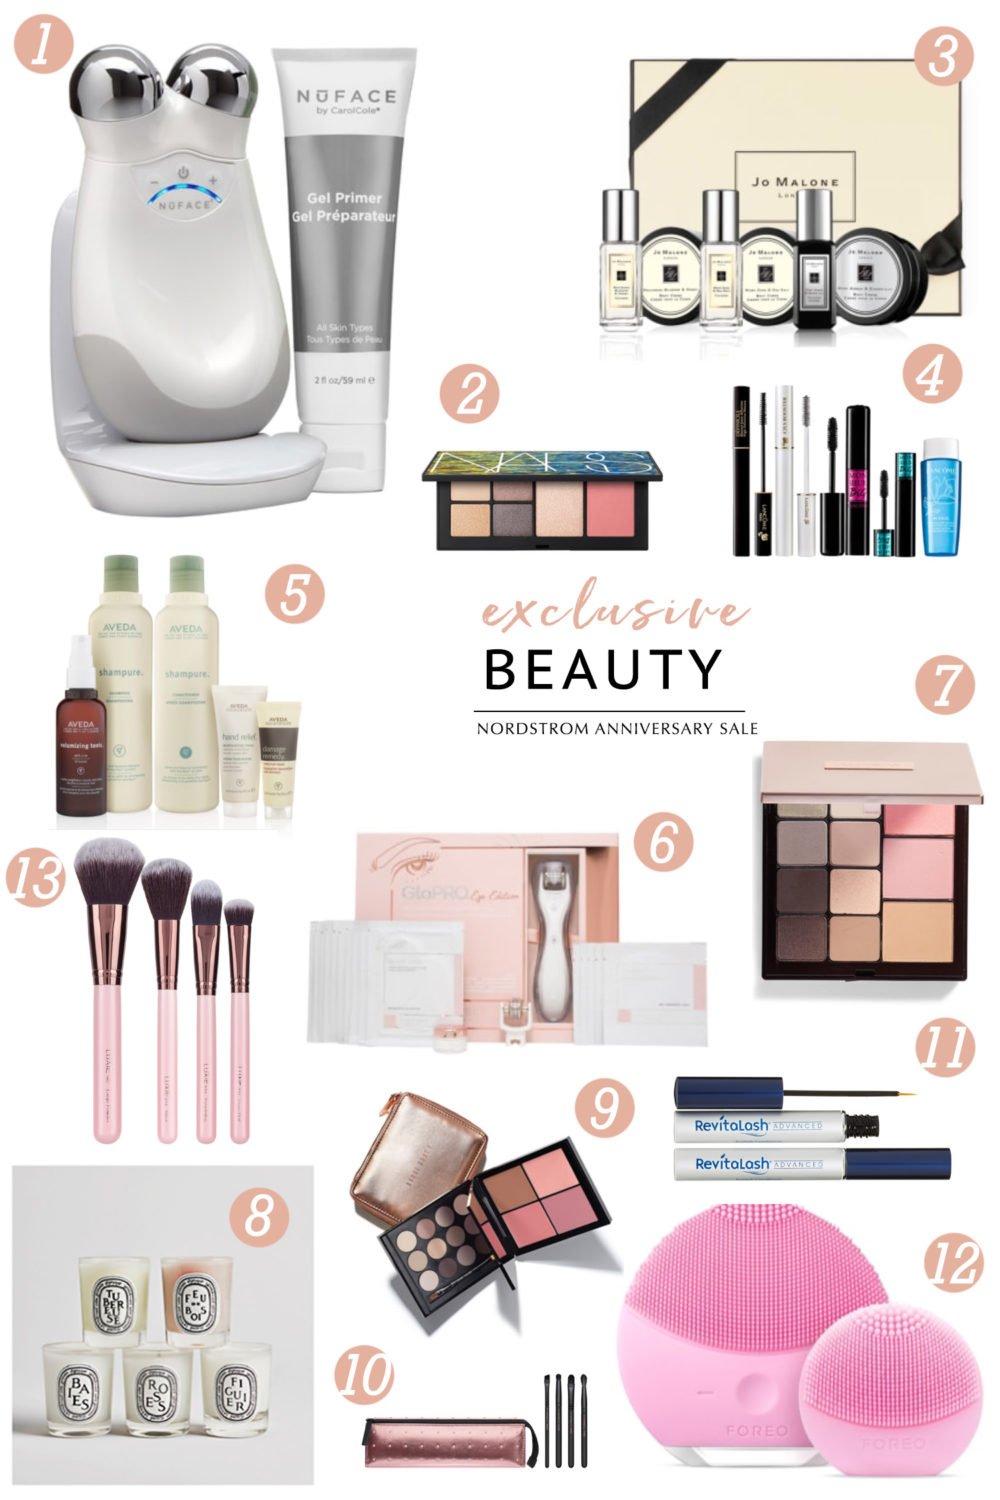 Nordstrom Anniverary Sale | Beauty Exclusives